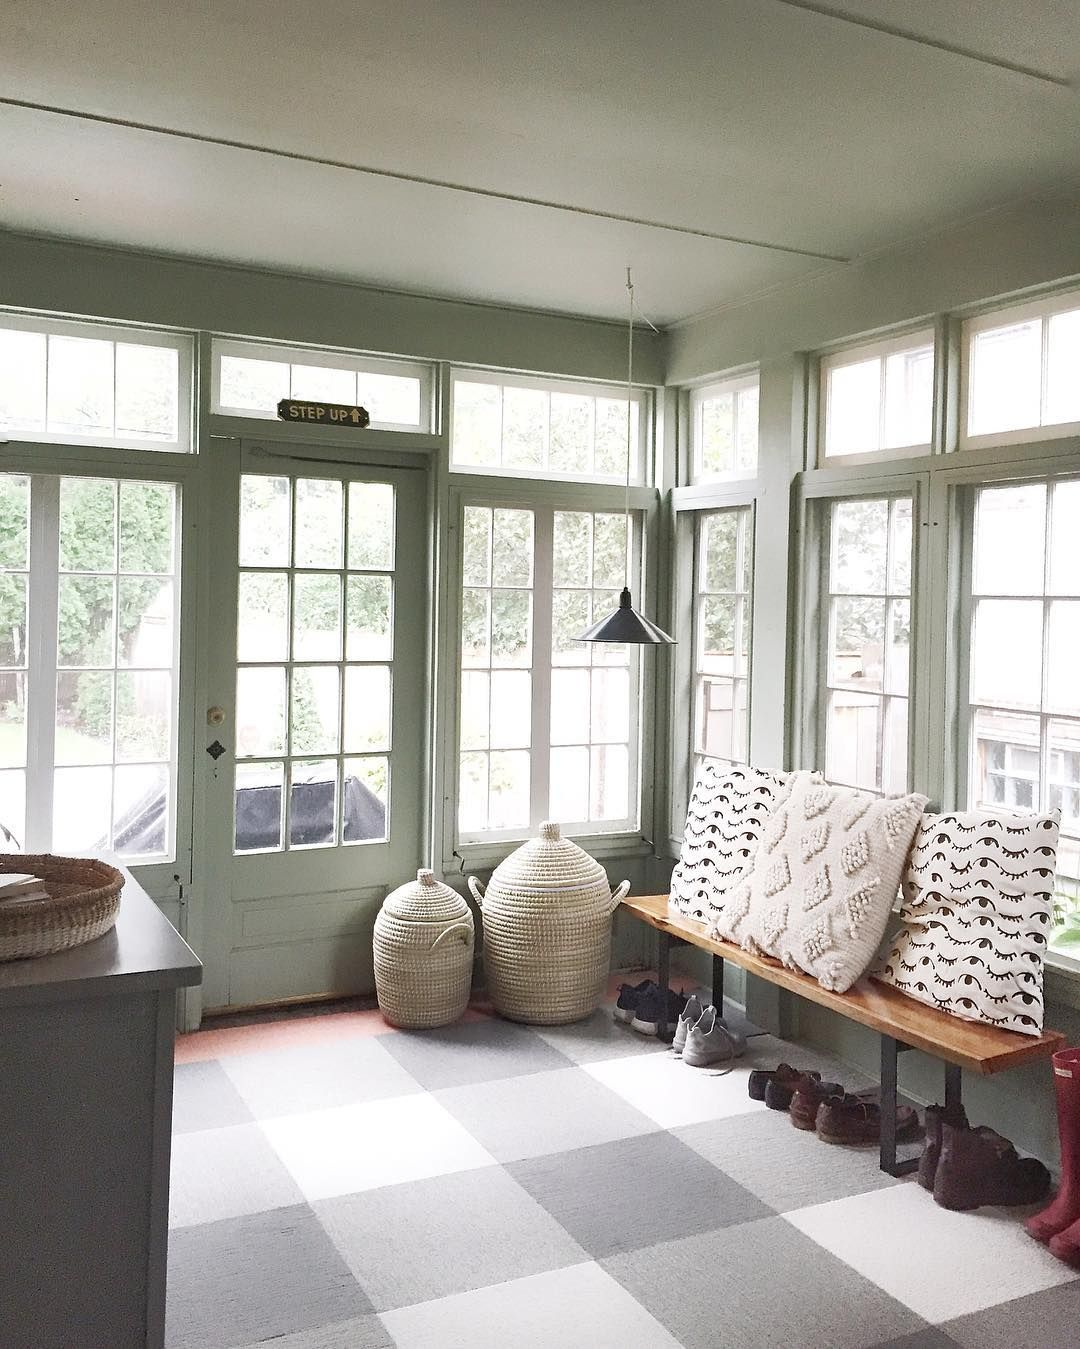 Pin By Katie Evans On El Bano / Laundry Room